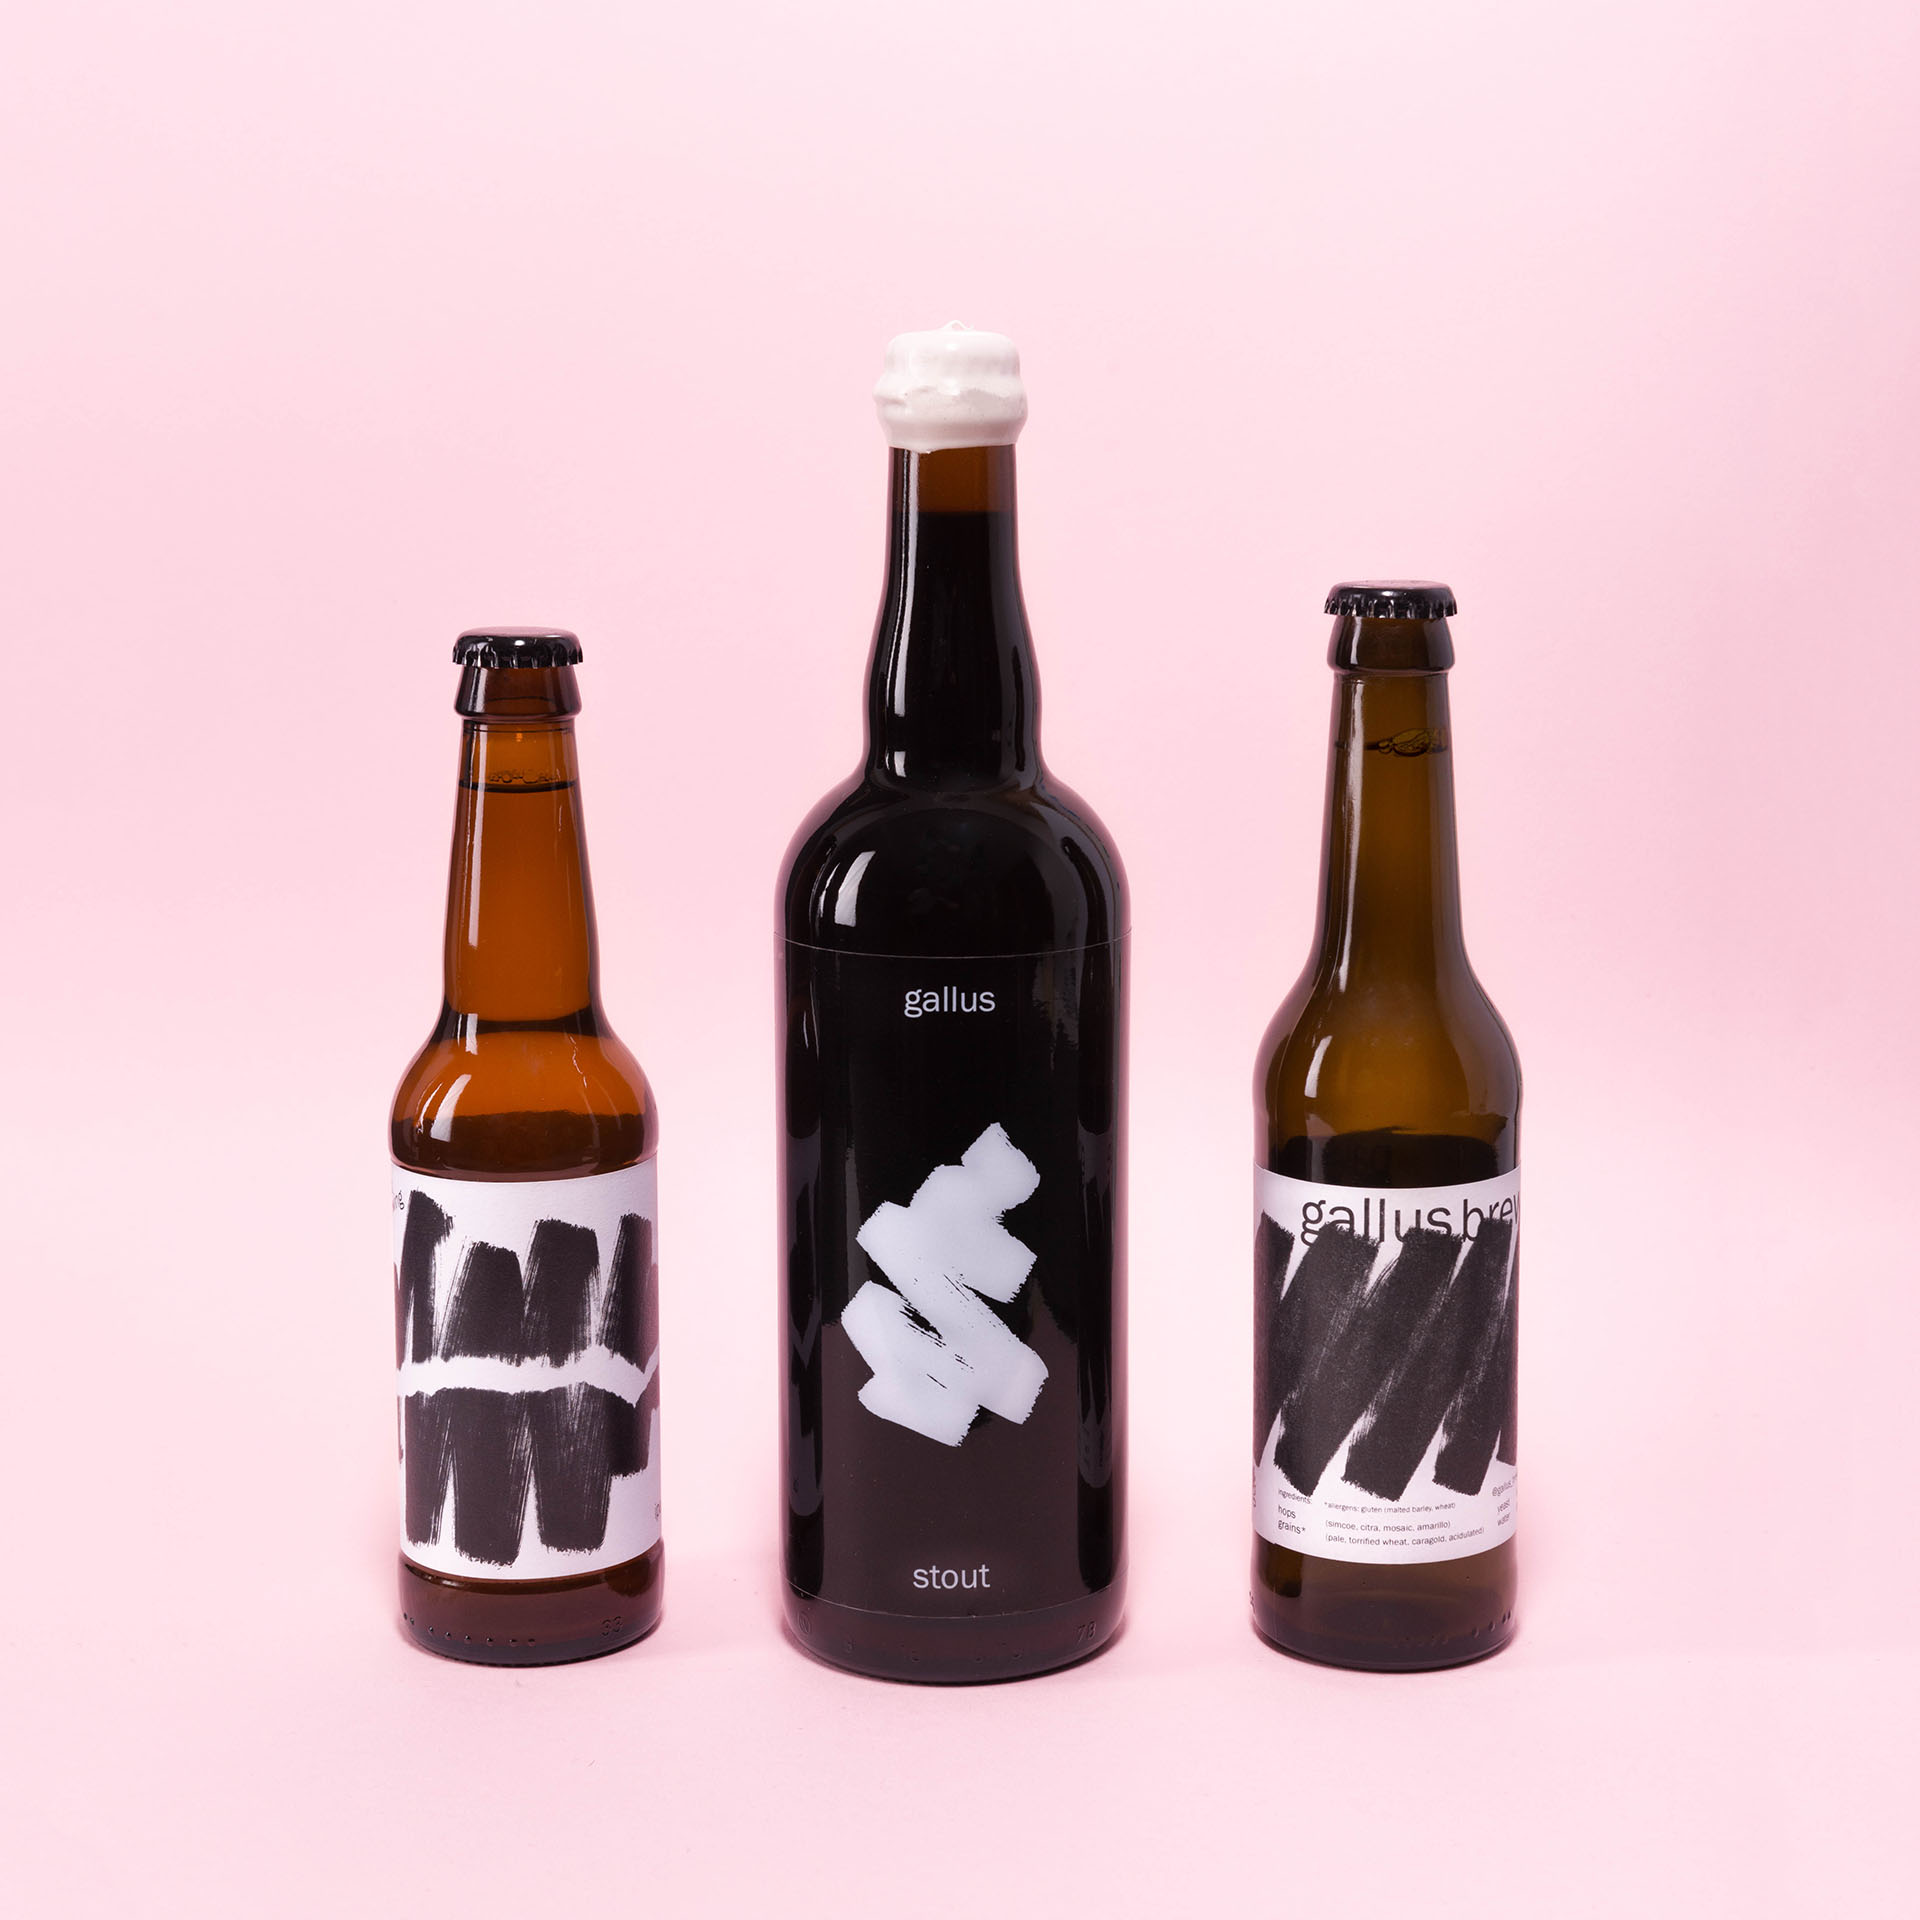 IPA Stout and Pale Ale bottles from Gallus Brewing